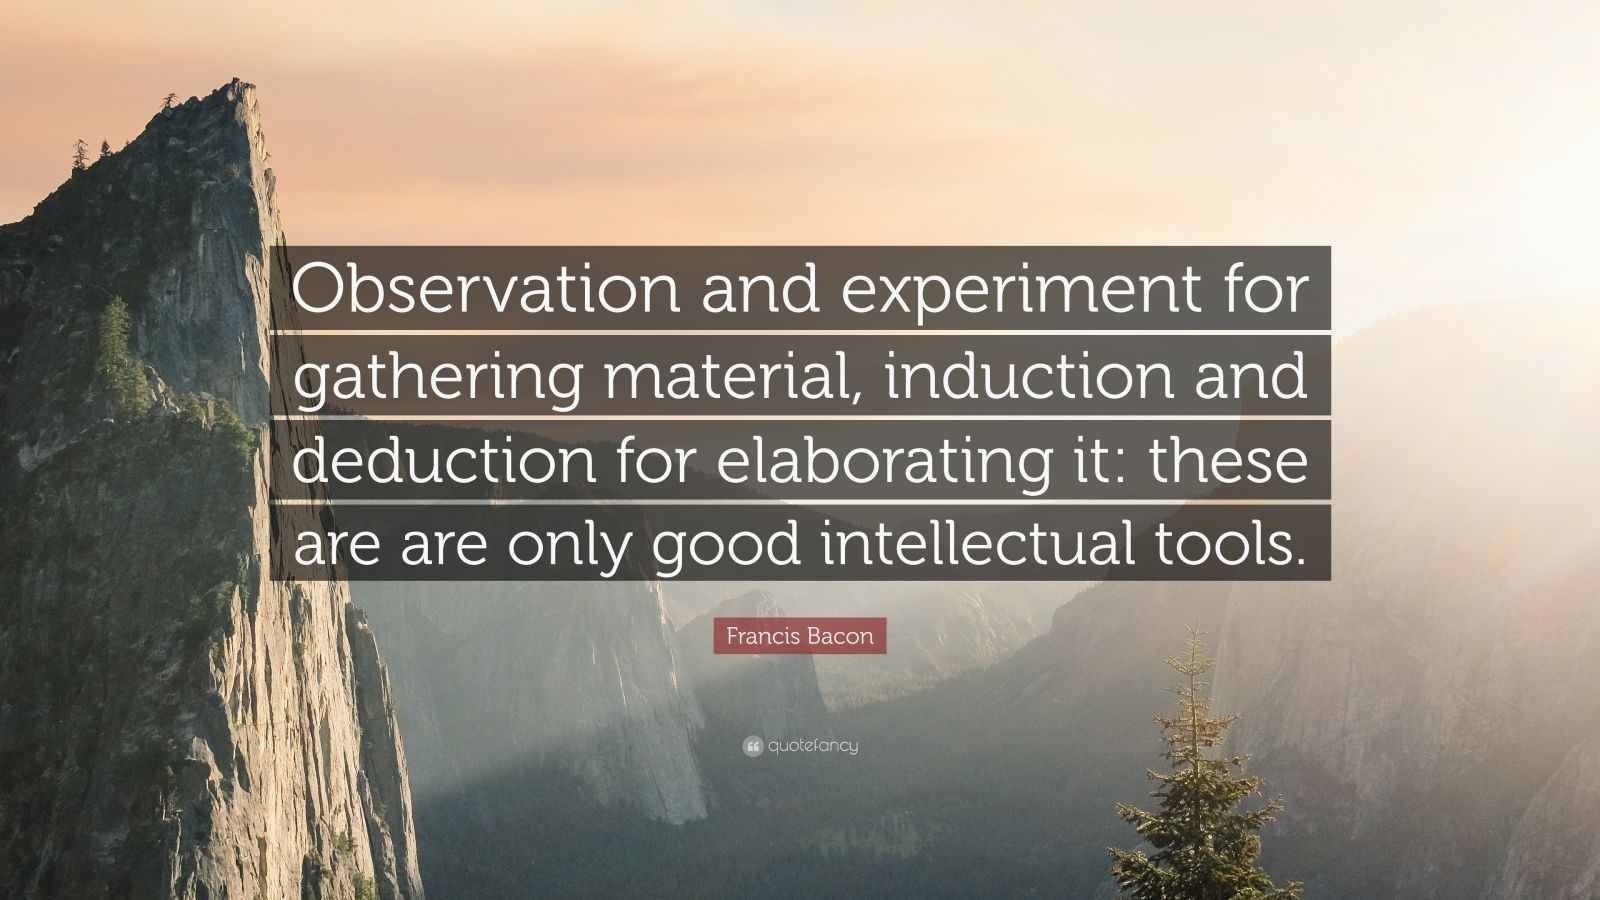 """Francis Bacon Quote: """"Observation and experiment for gathering material, induction and deduction for elaborating it: these are are only good intellectual tools."""""""